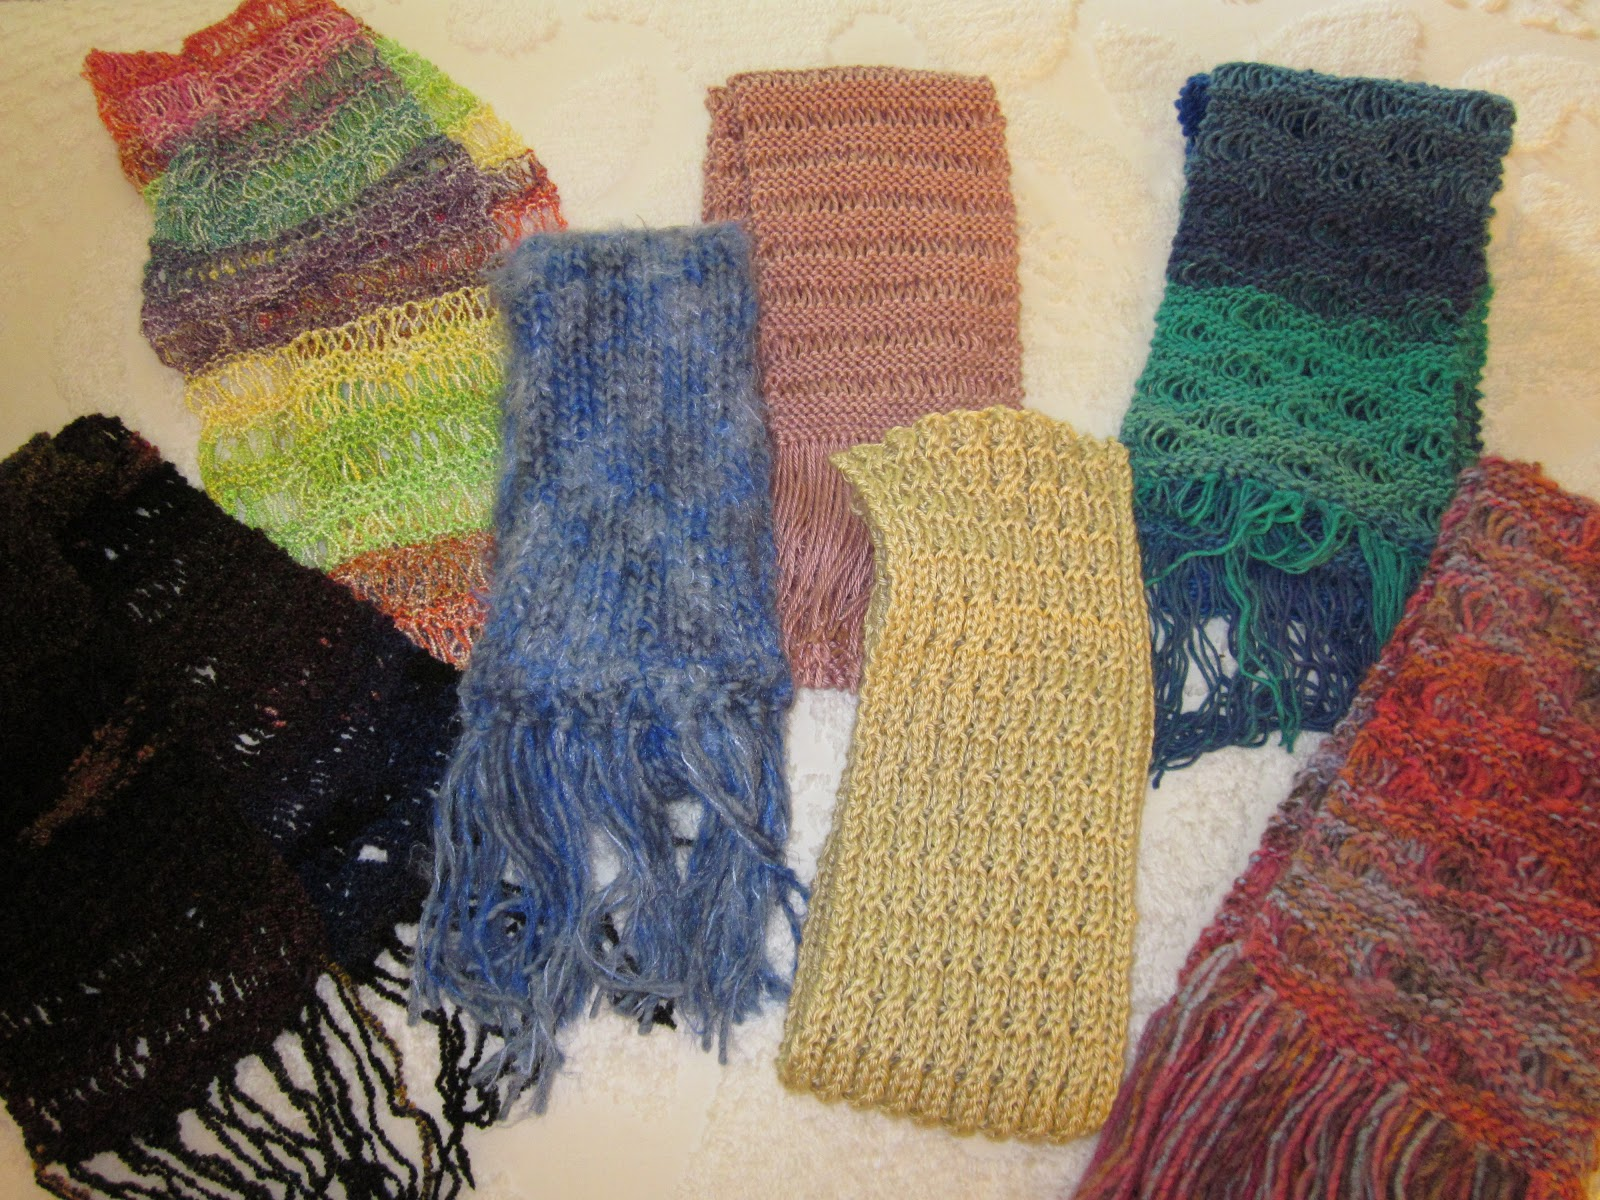 Knitting Scarves For The Homeless : Hot coffee cool jazz december